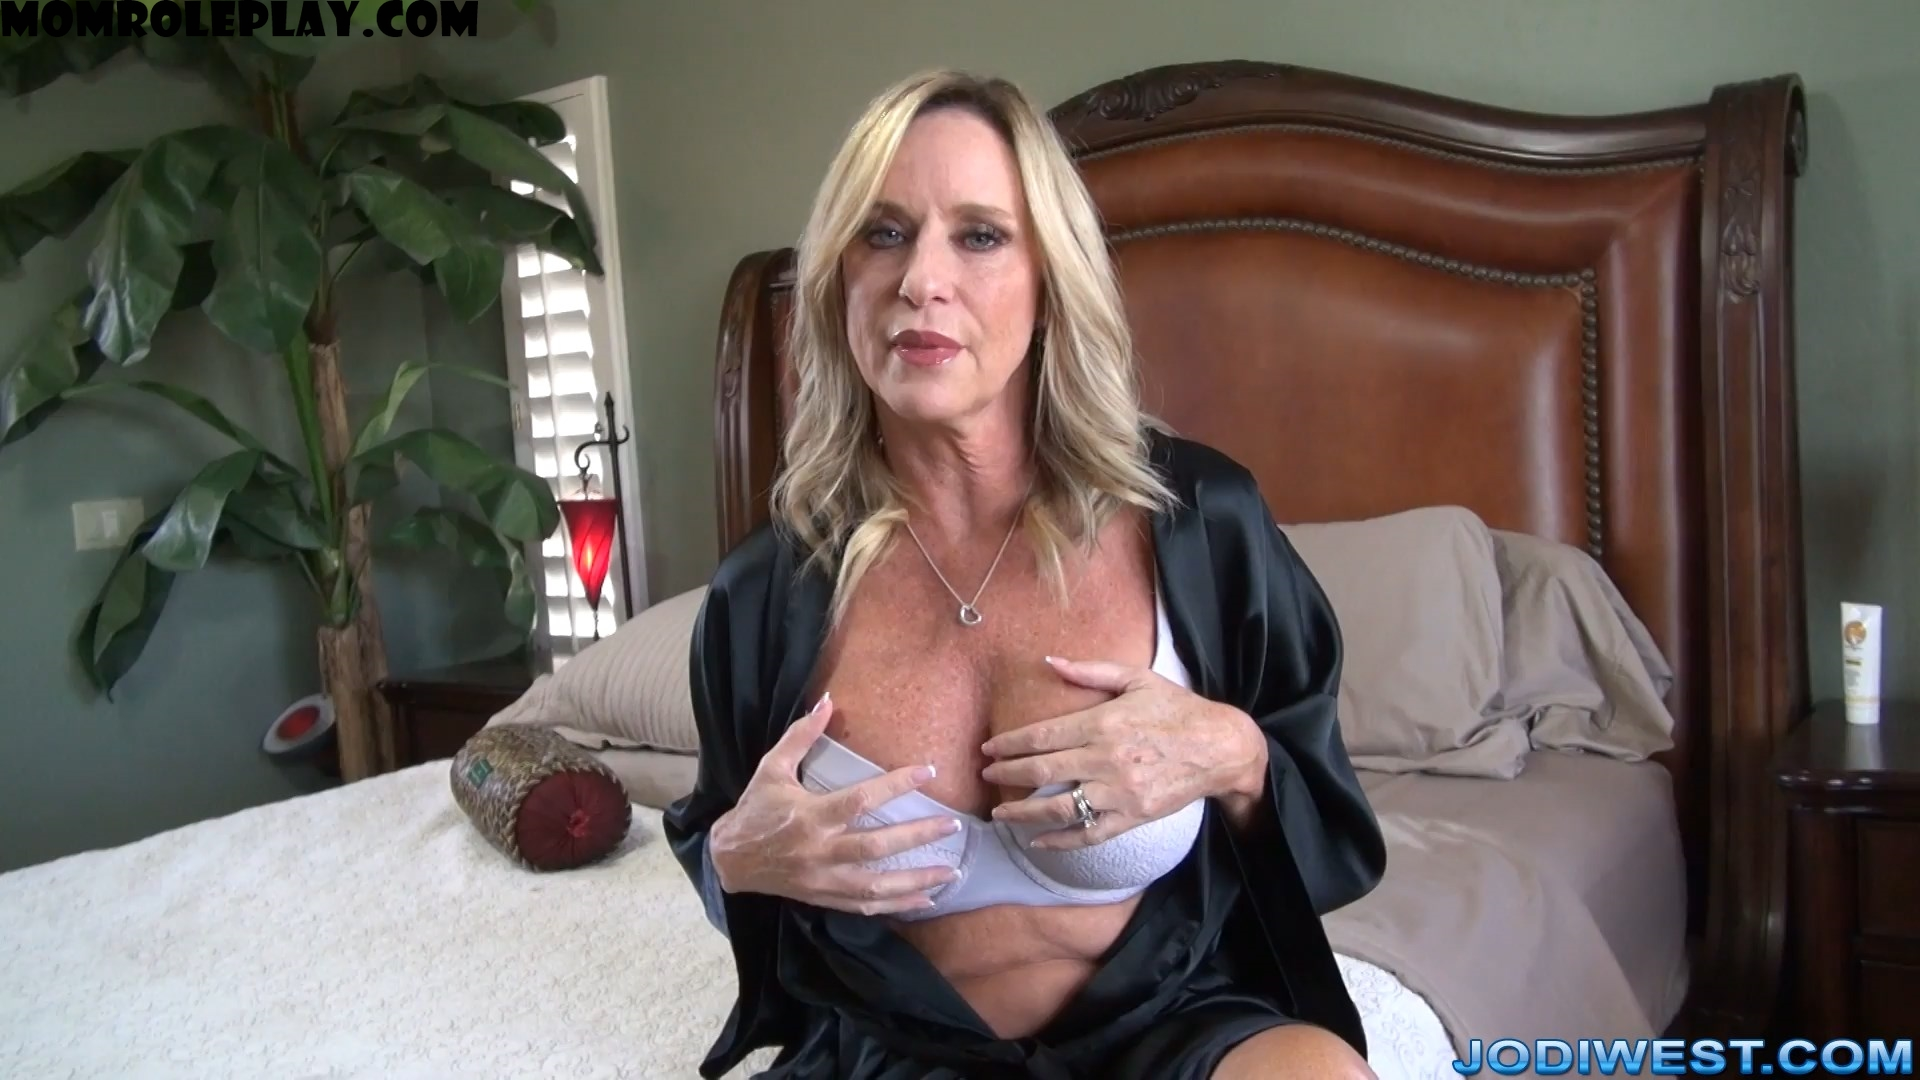 Jodi West - A Creampie For Mother 1080p